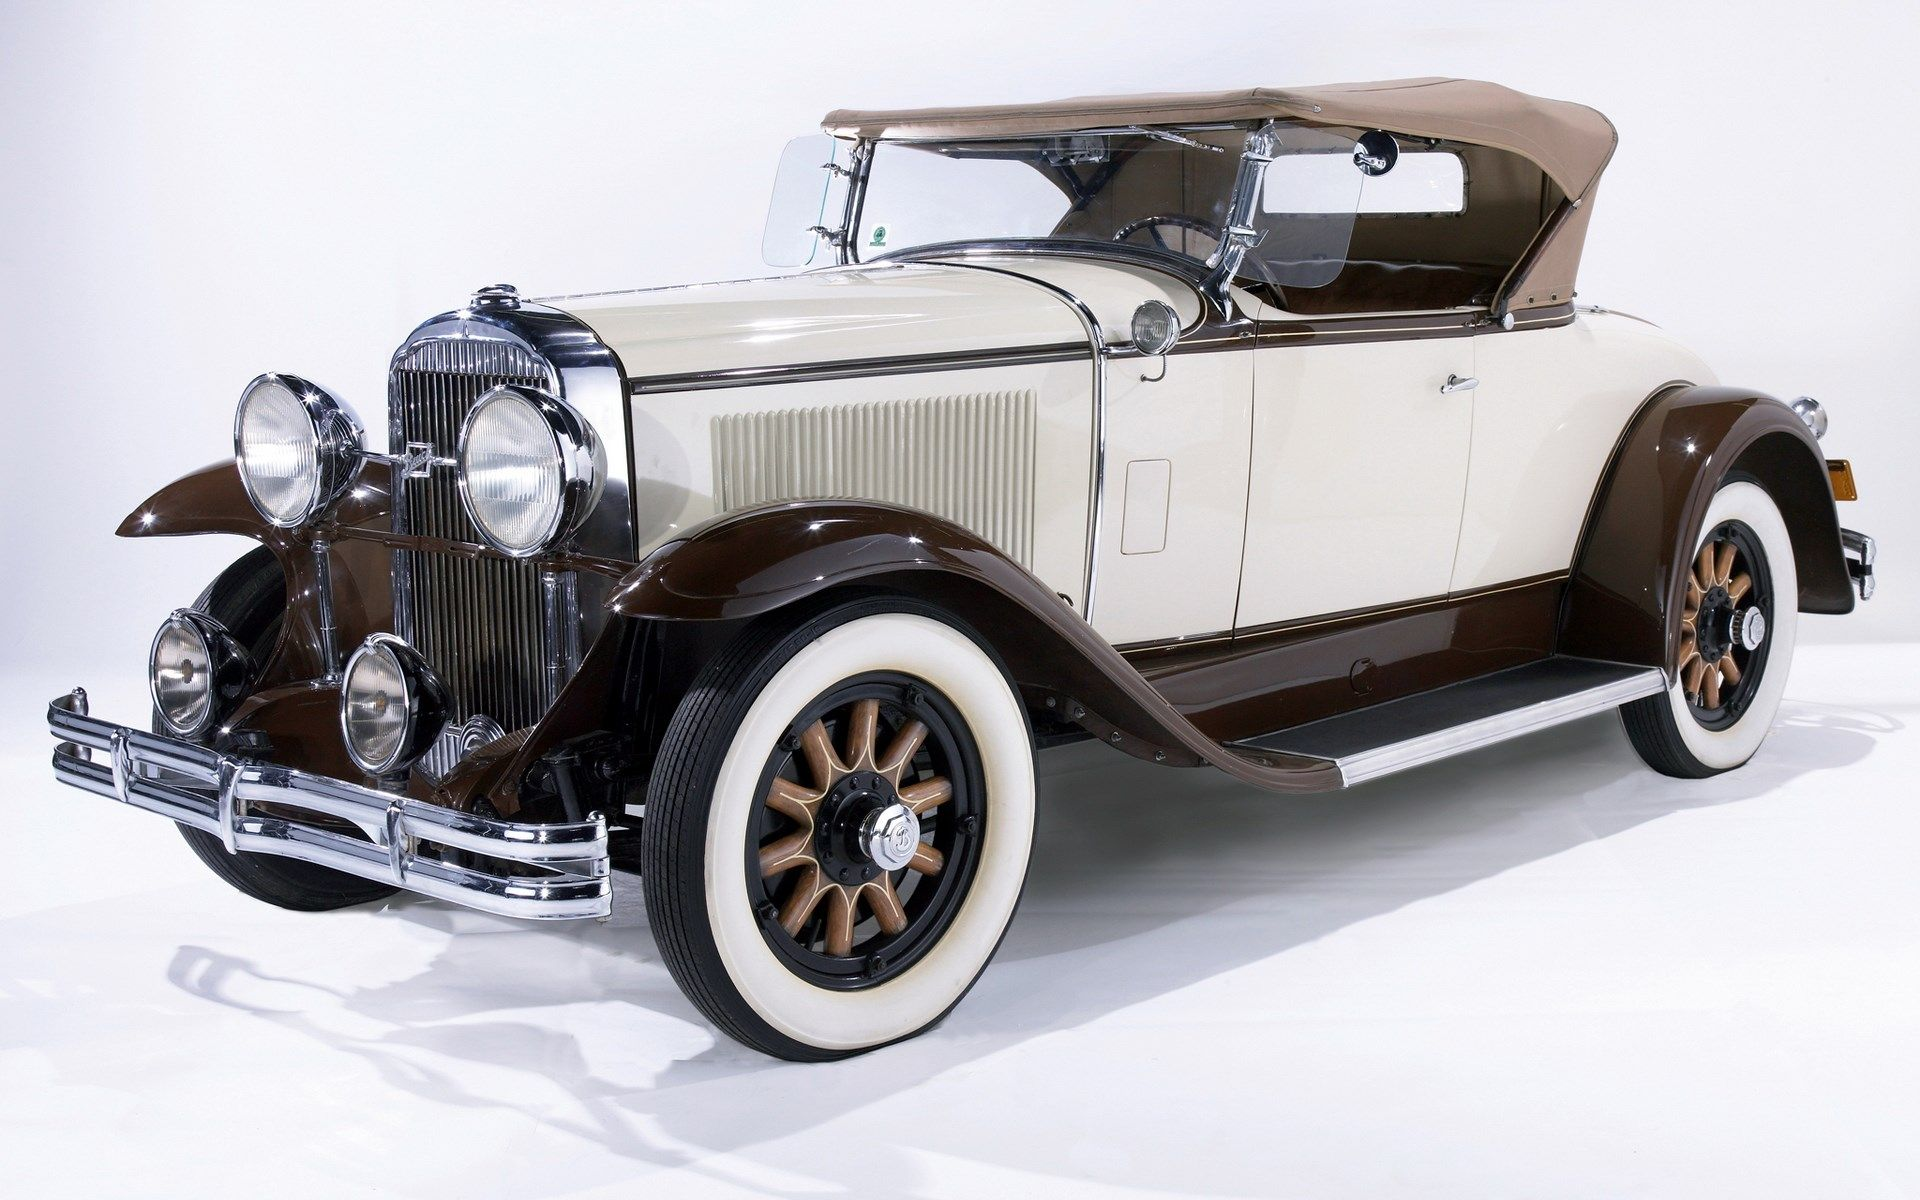 1930 Buick Roadster Macbook Wallpapers Hd By Zola Sinclair 2017 03 19